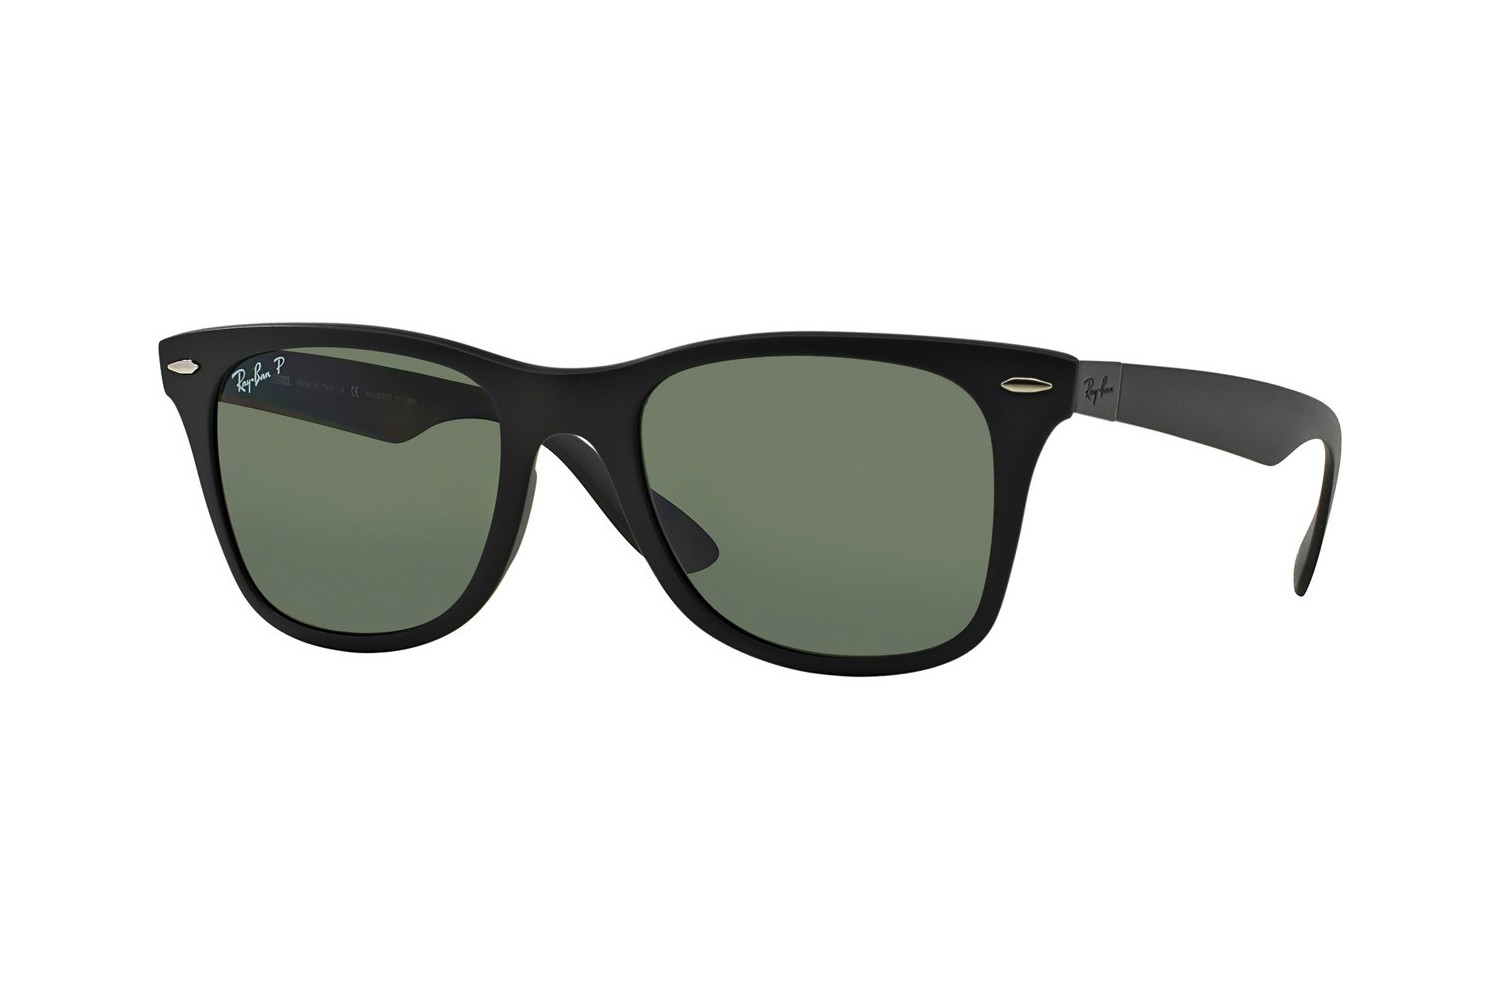 Ray-Ban Liteforce RB4195F-601S/9A(52) Polarized